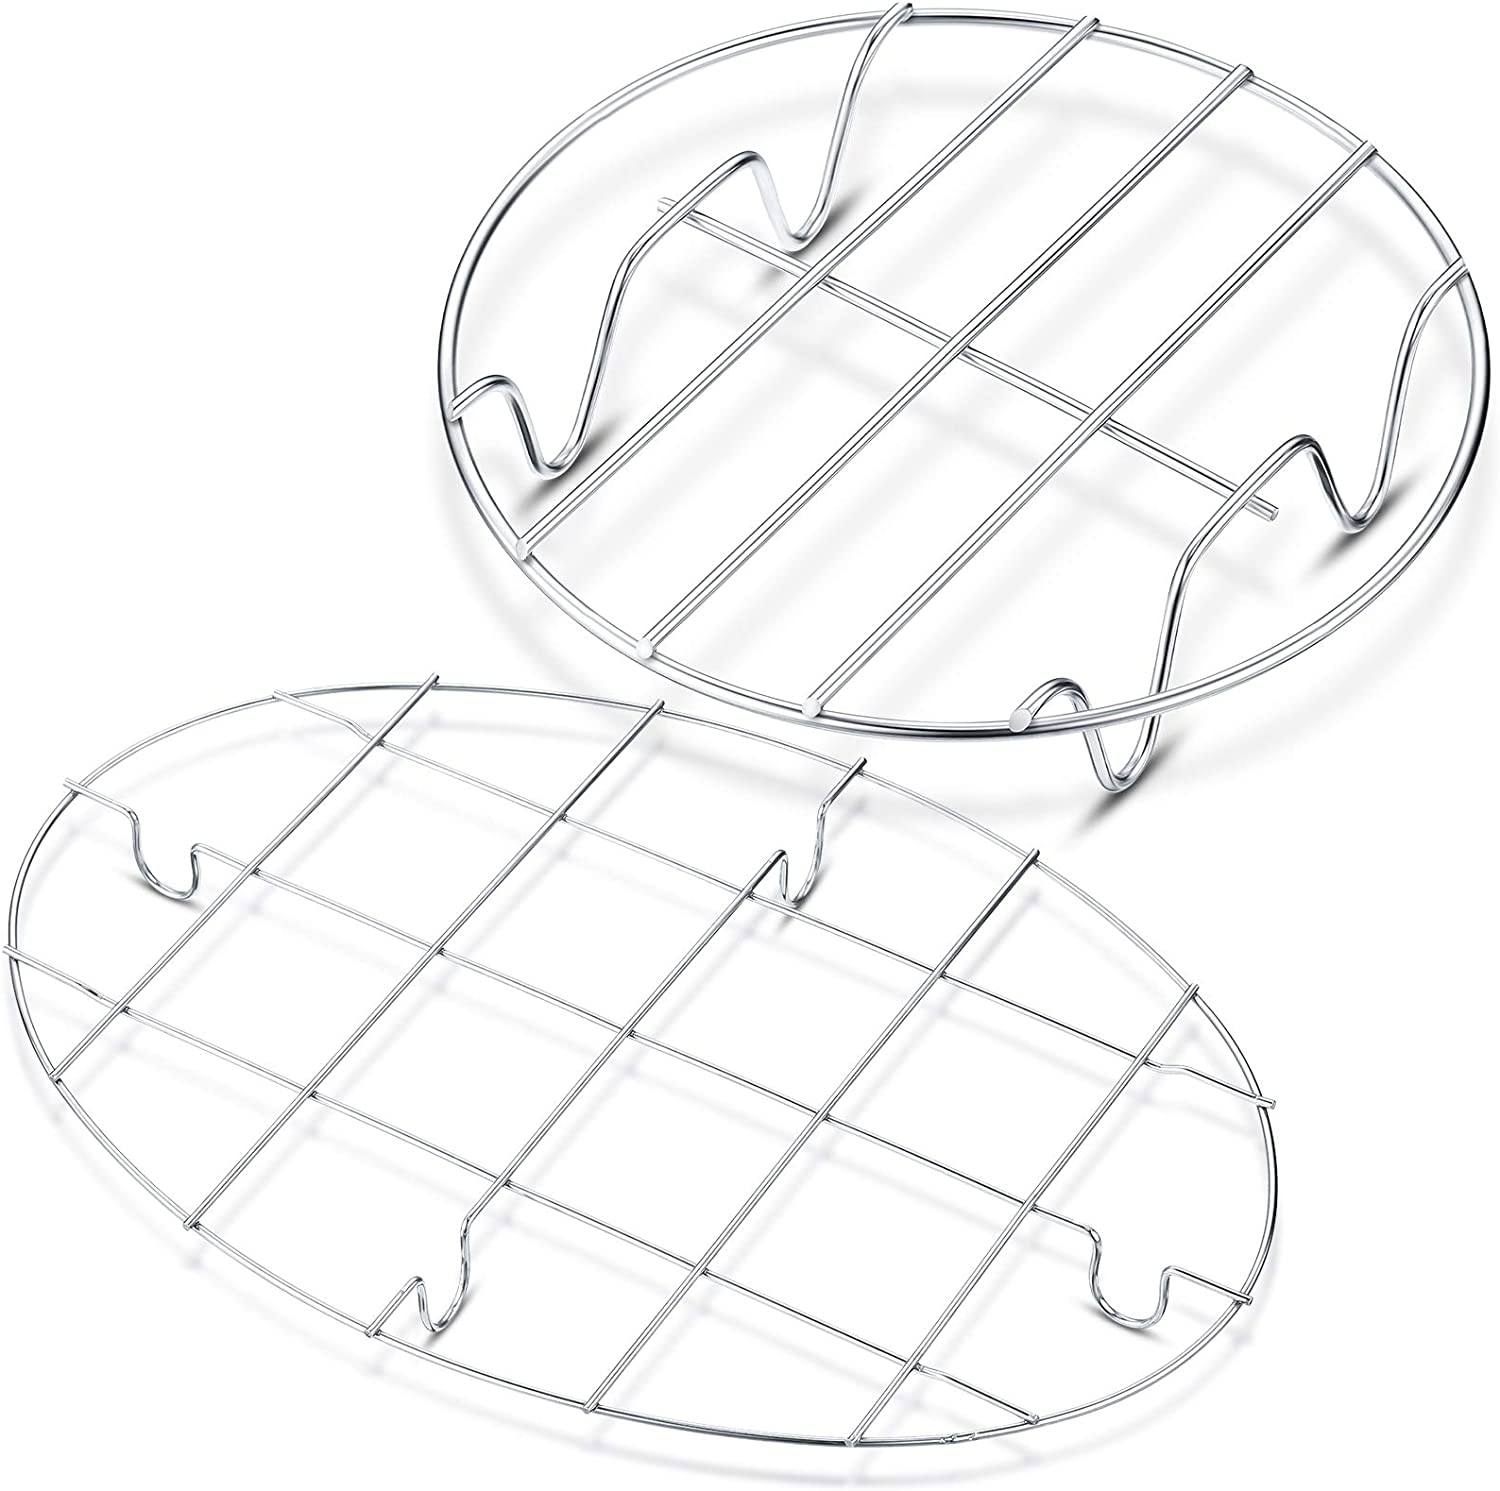 2 Pieces Small Roasting Rack Set, 9.8 x 6.7 Inch Oval Cooling Rack, 6 Inch Round Baking Rack Multifunctional 304 Stainless Steel Steamer Rack for Steaming Oven Air Fryer Pressure Cooker Dishwasher